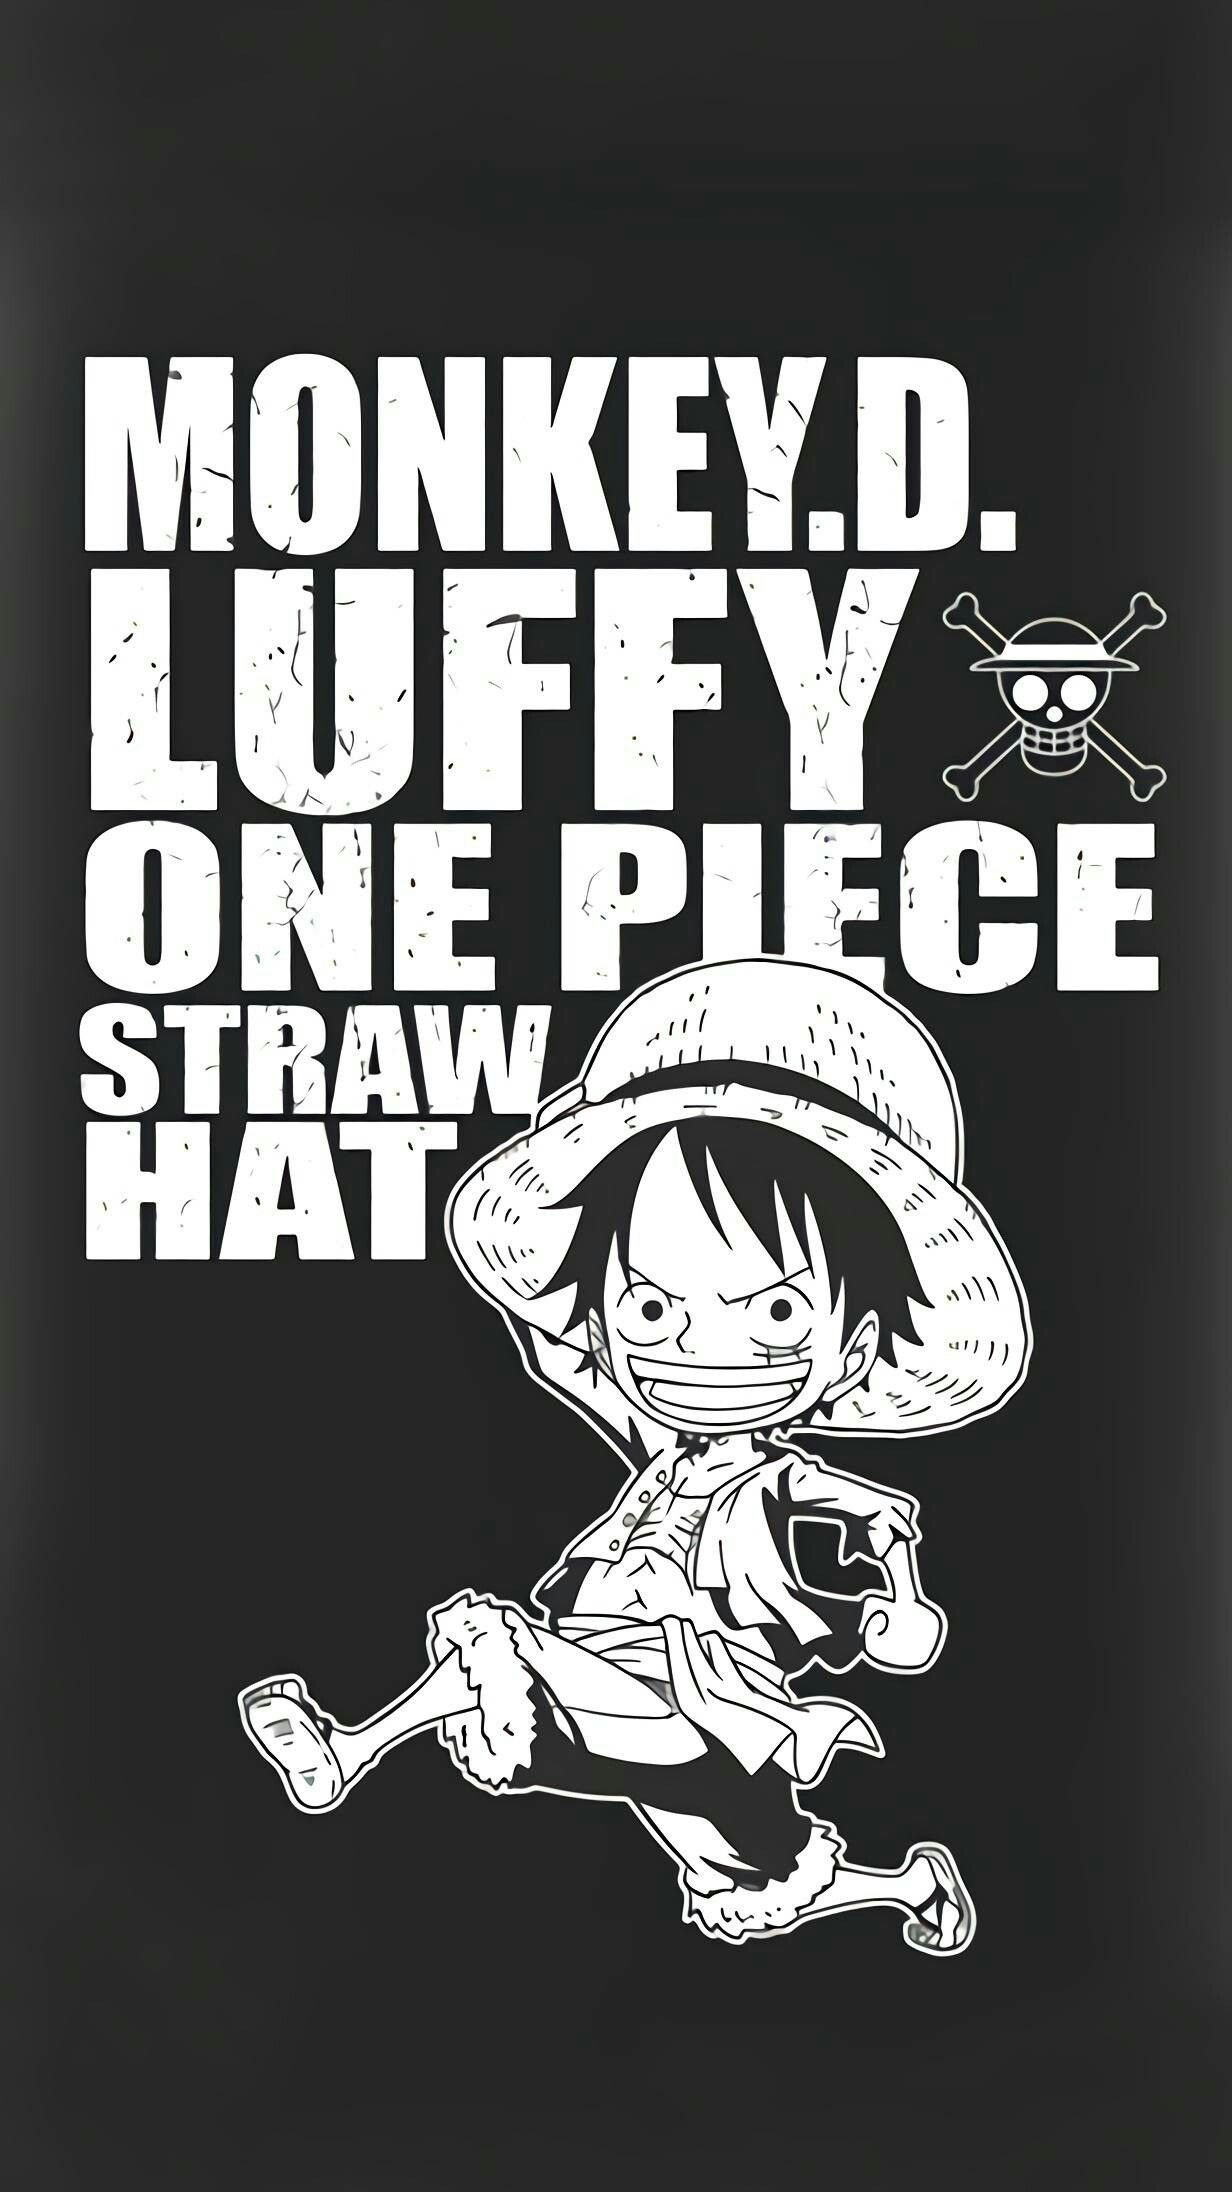 Monkey D Luffy One Piece Straw Hat Captain Seni Animasi Gambar Manga